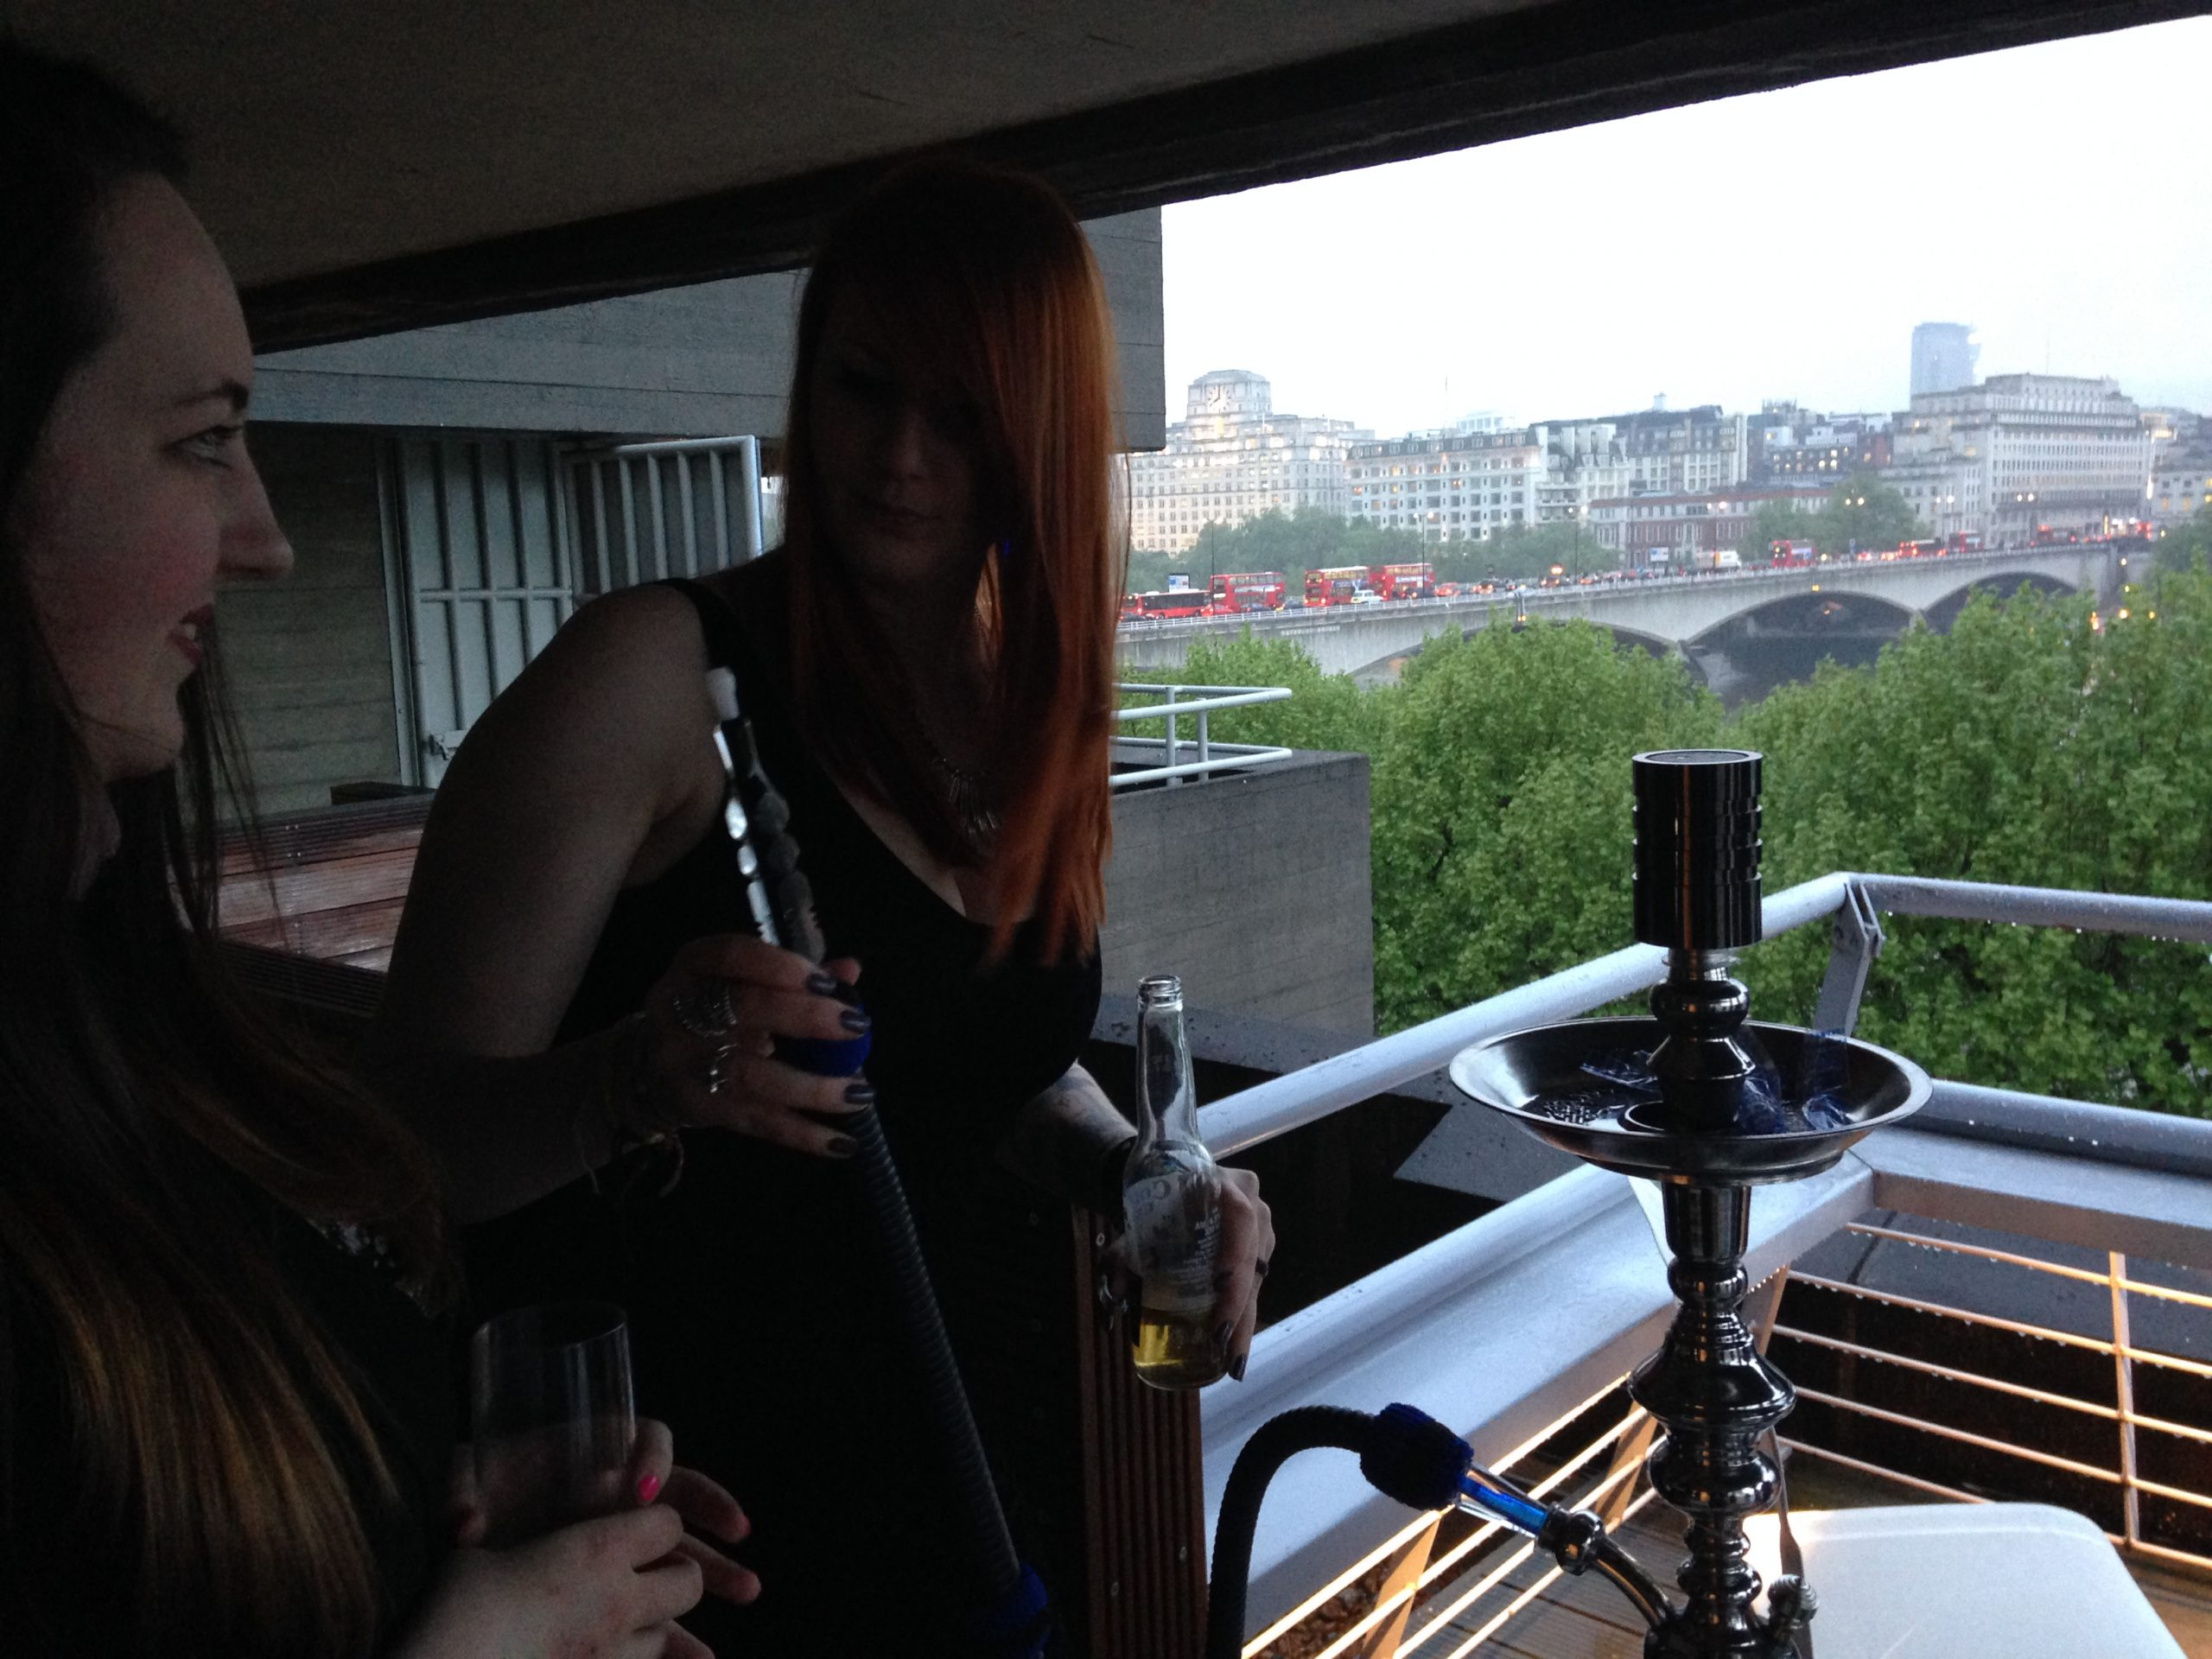 Shisha Hire High Wycombe- 18 and 21 Birthday Parties, Weddings, Corporate Events and Celebrity Parties